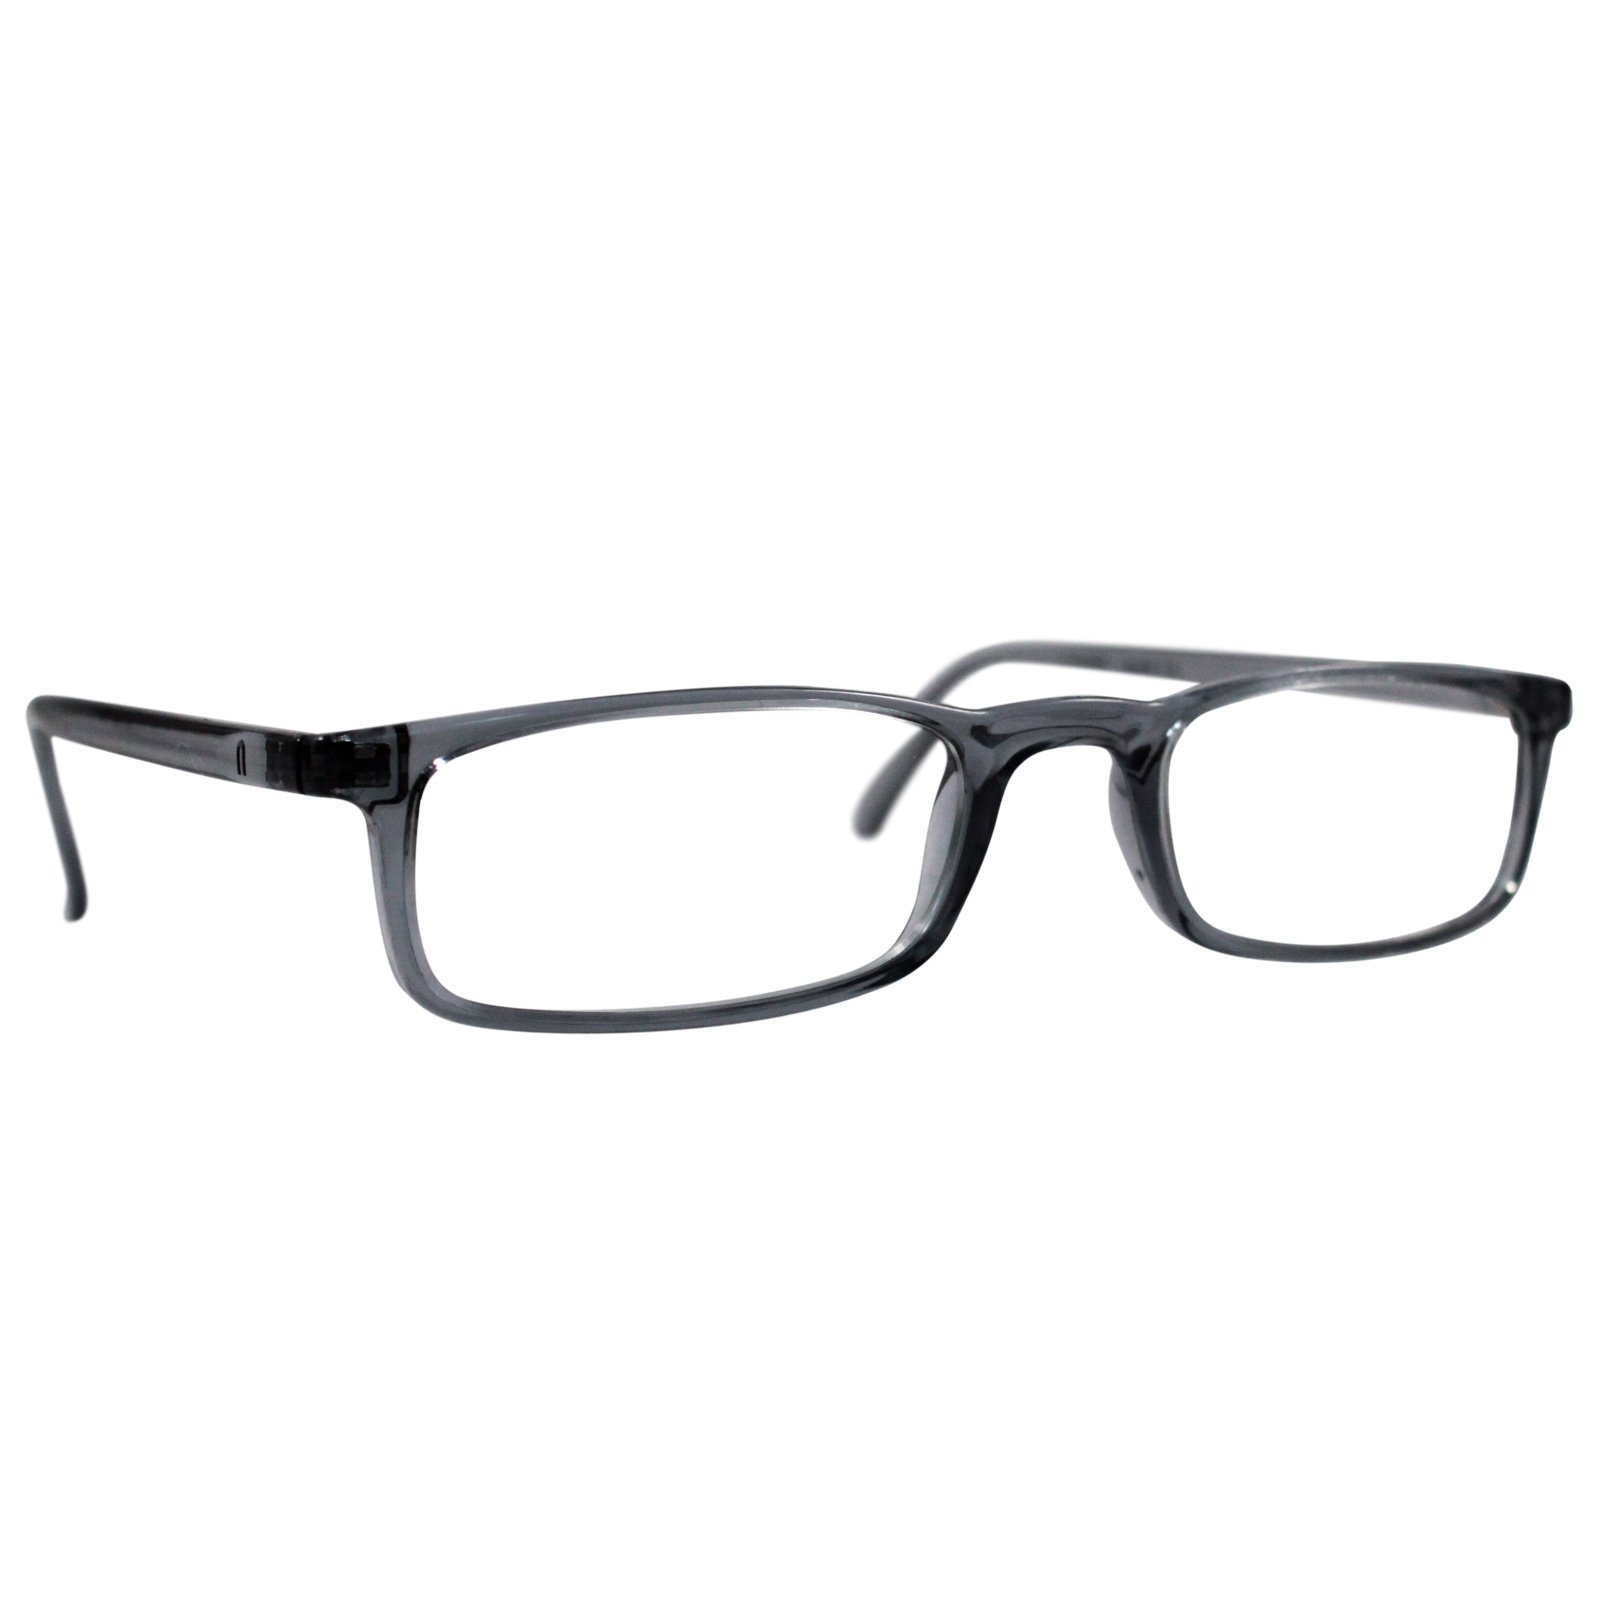 Nannini Quick 7.9 Lightweight Reader Glasses Grey 1.0, Front View